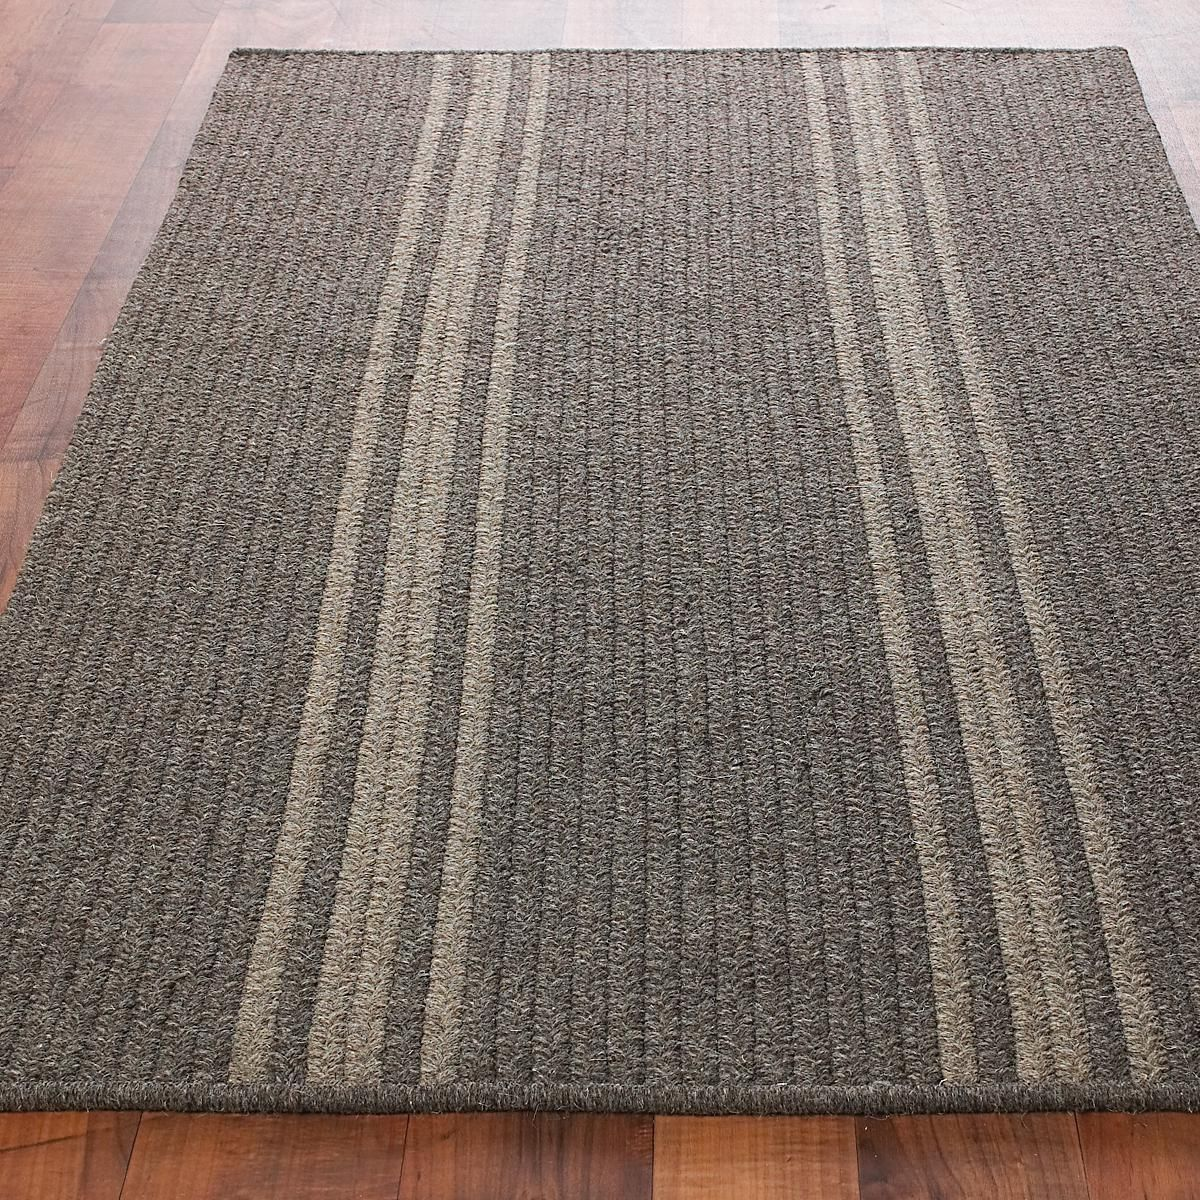 French Feedsack Striped Rug Striped Rug Buying Carpet Carpet Design